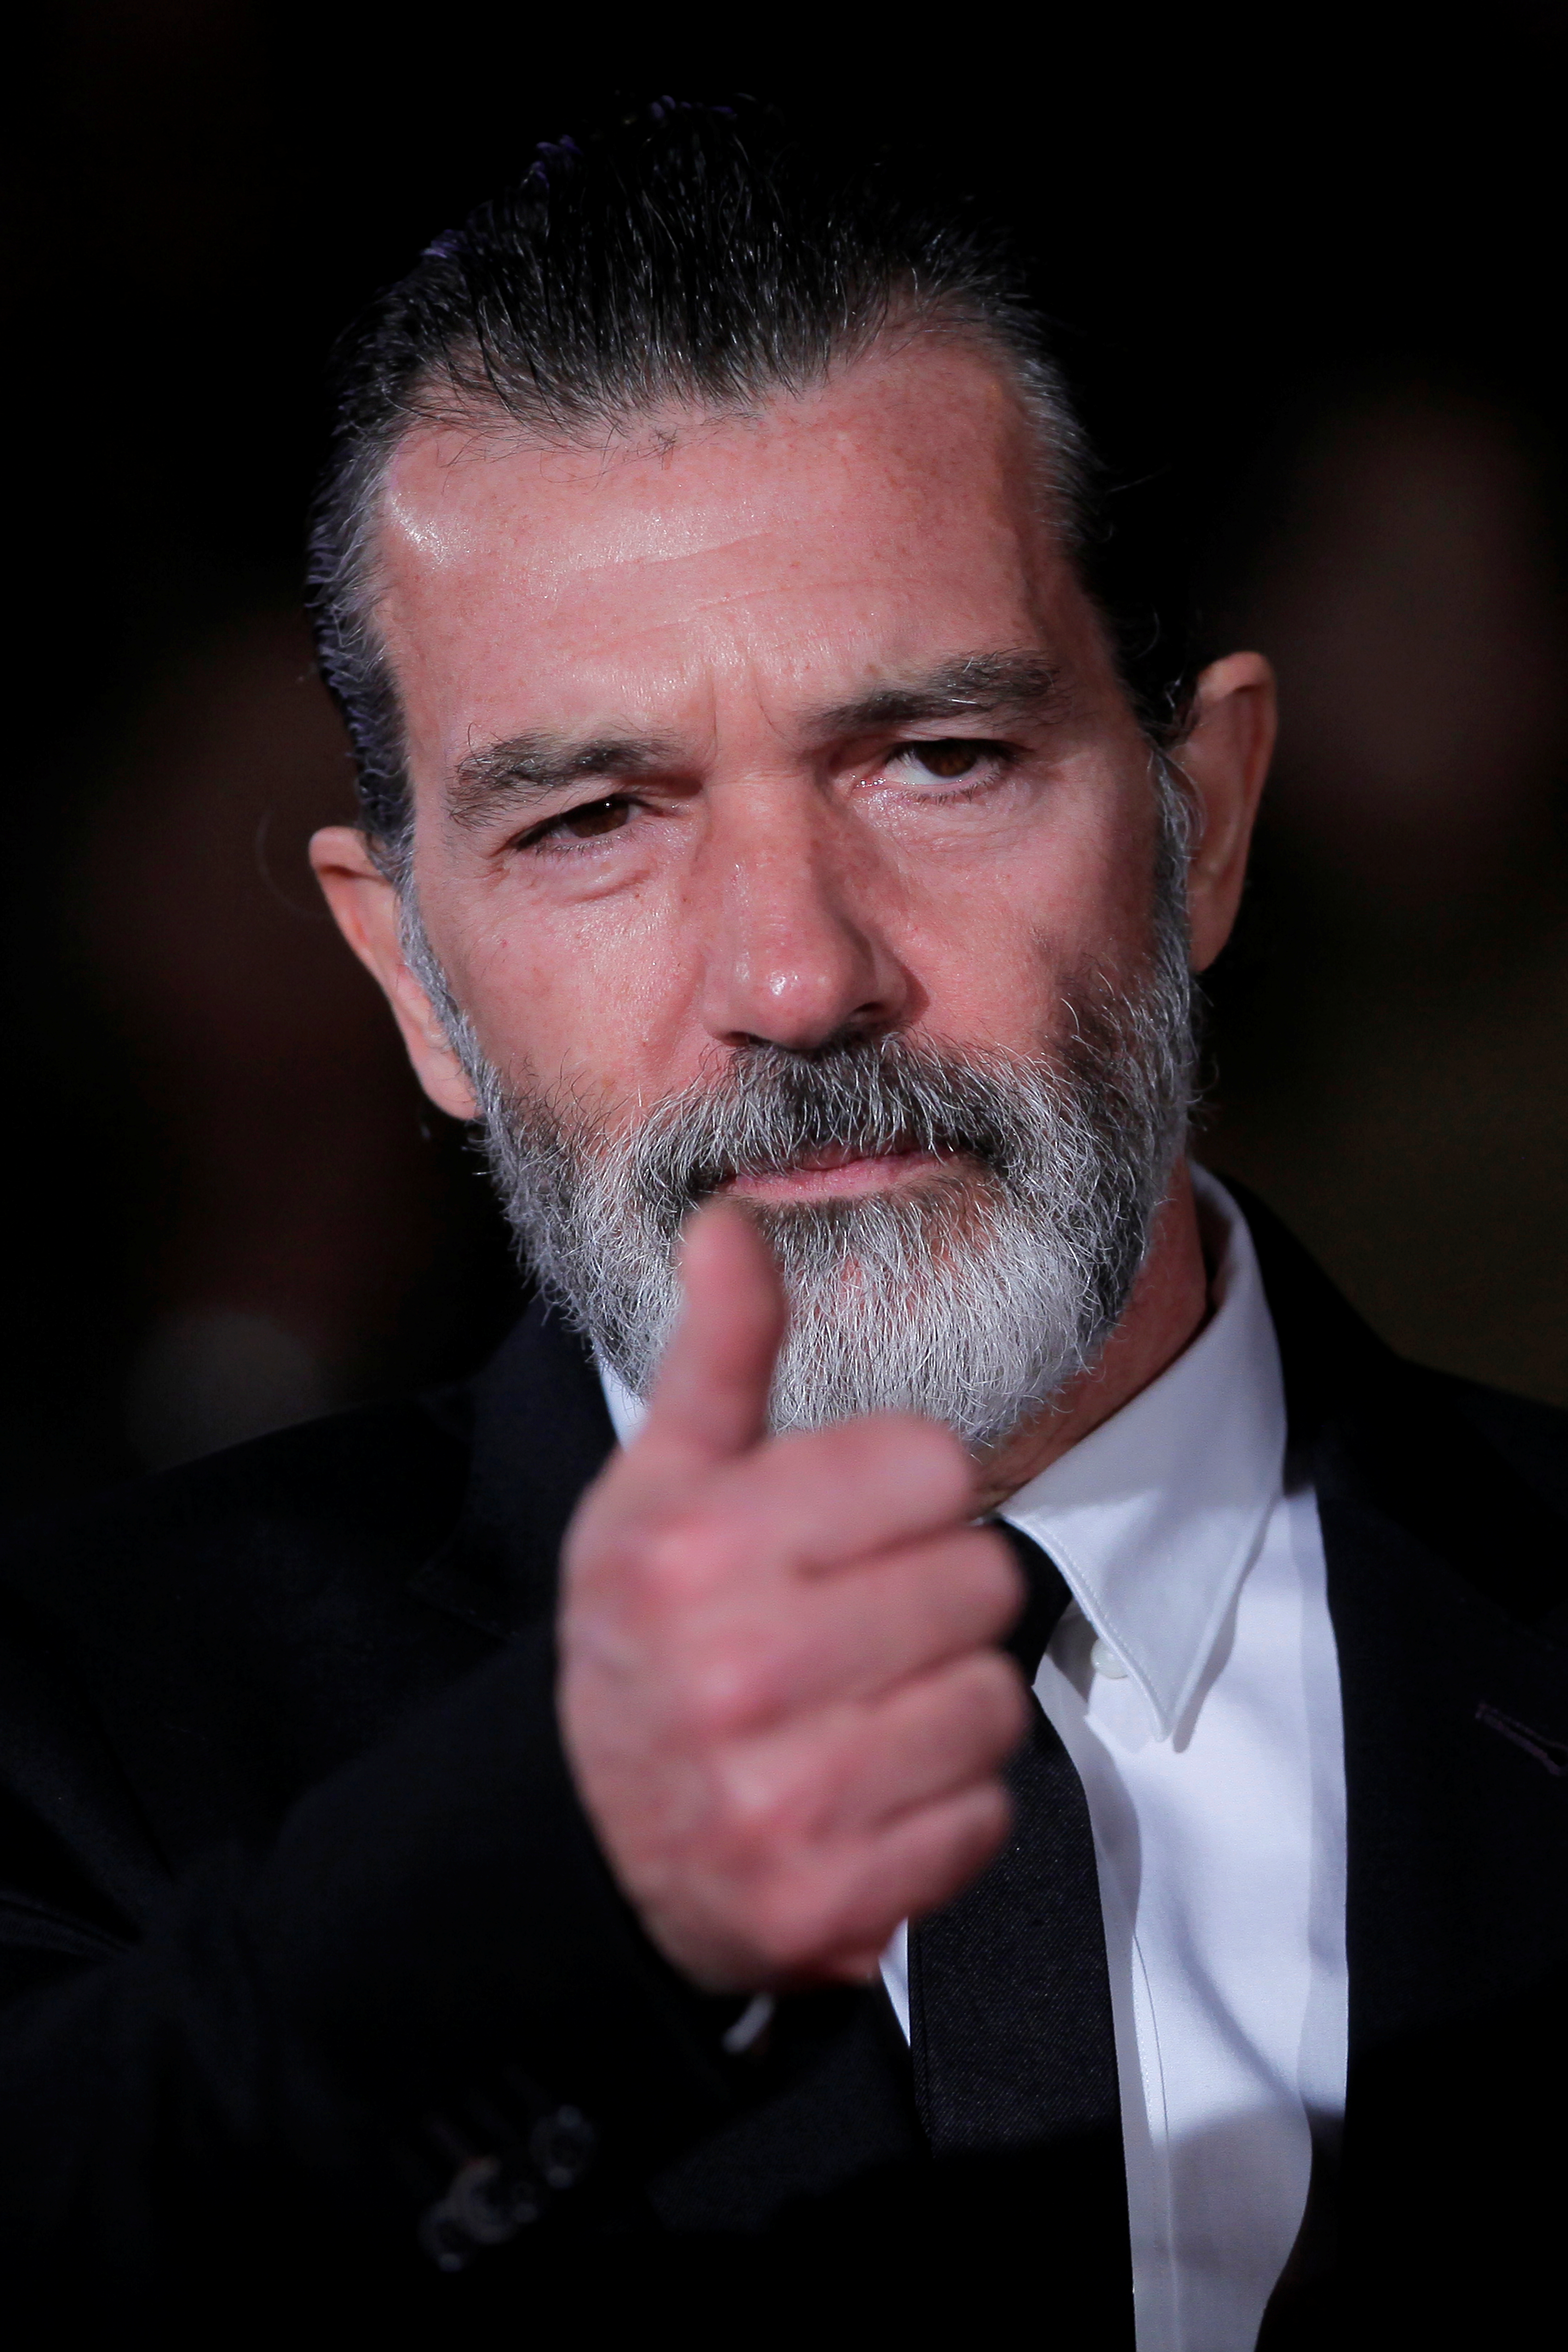 antonio banderas Antonio banderas news, related photos and videos, and reviews of antonio banderas performances according to wikipedia: josé antonio domínguez banderas, better known as antonio banderas, is a spanish film actor who has appeared in several high-profile hollywood films including assassins, interview with the vampire, mariachi trilogy.